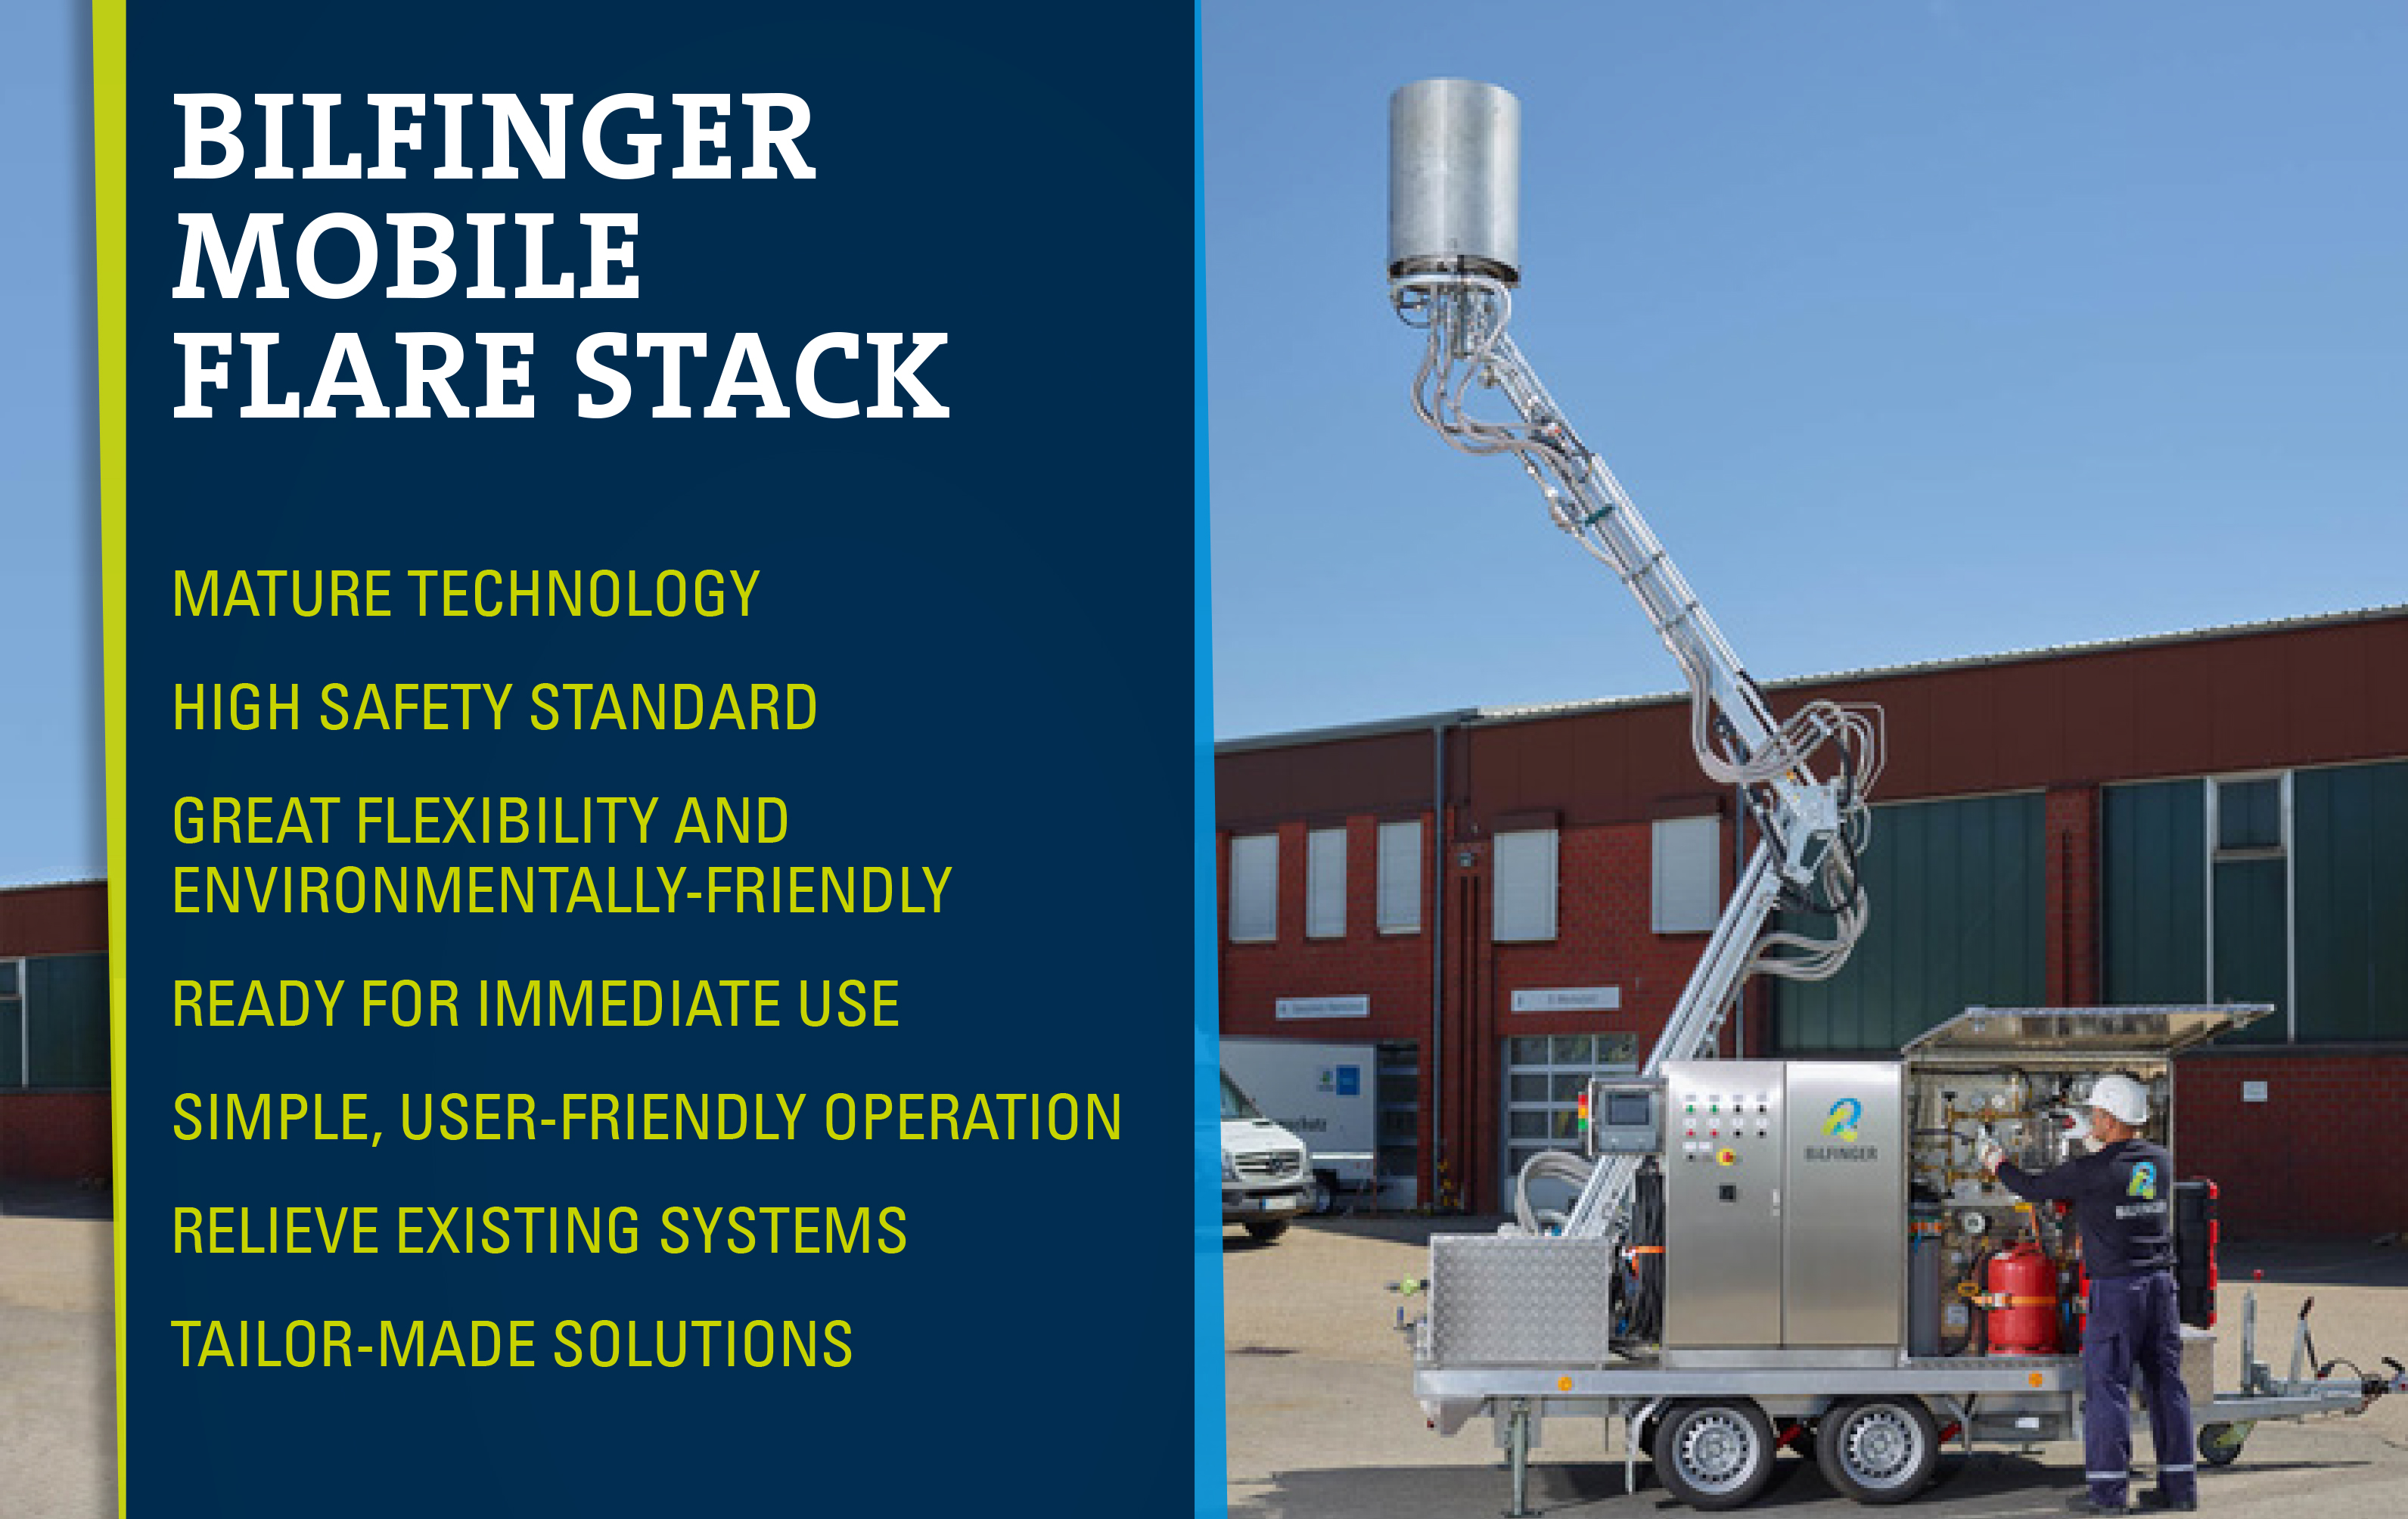 Bilfinger Mobile Flare Stack Product Sheet